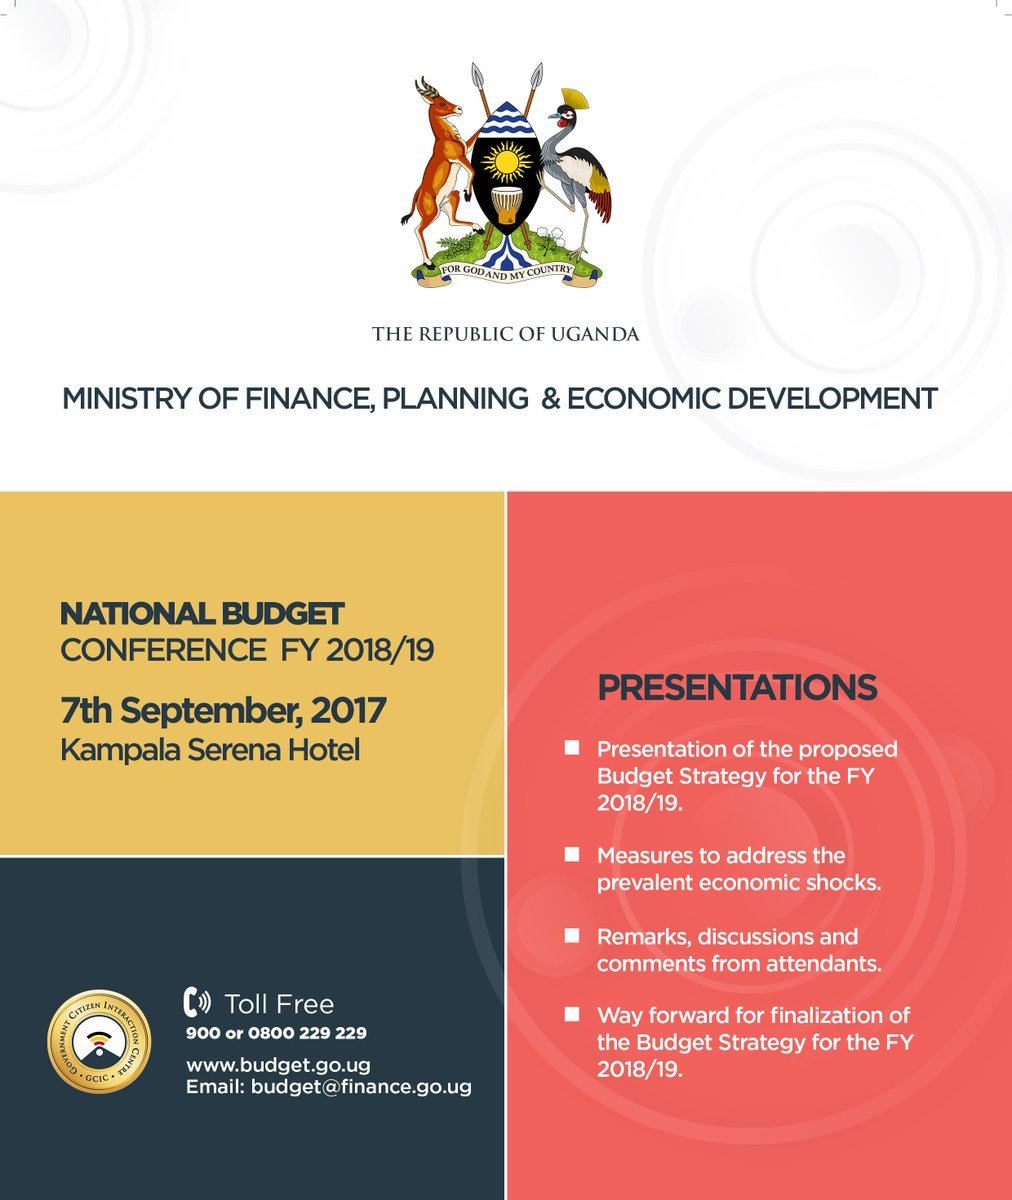 gcic uganda on twitter the national budget conference fy 201819 will encourage interactions between agencies on significant issues affecting the